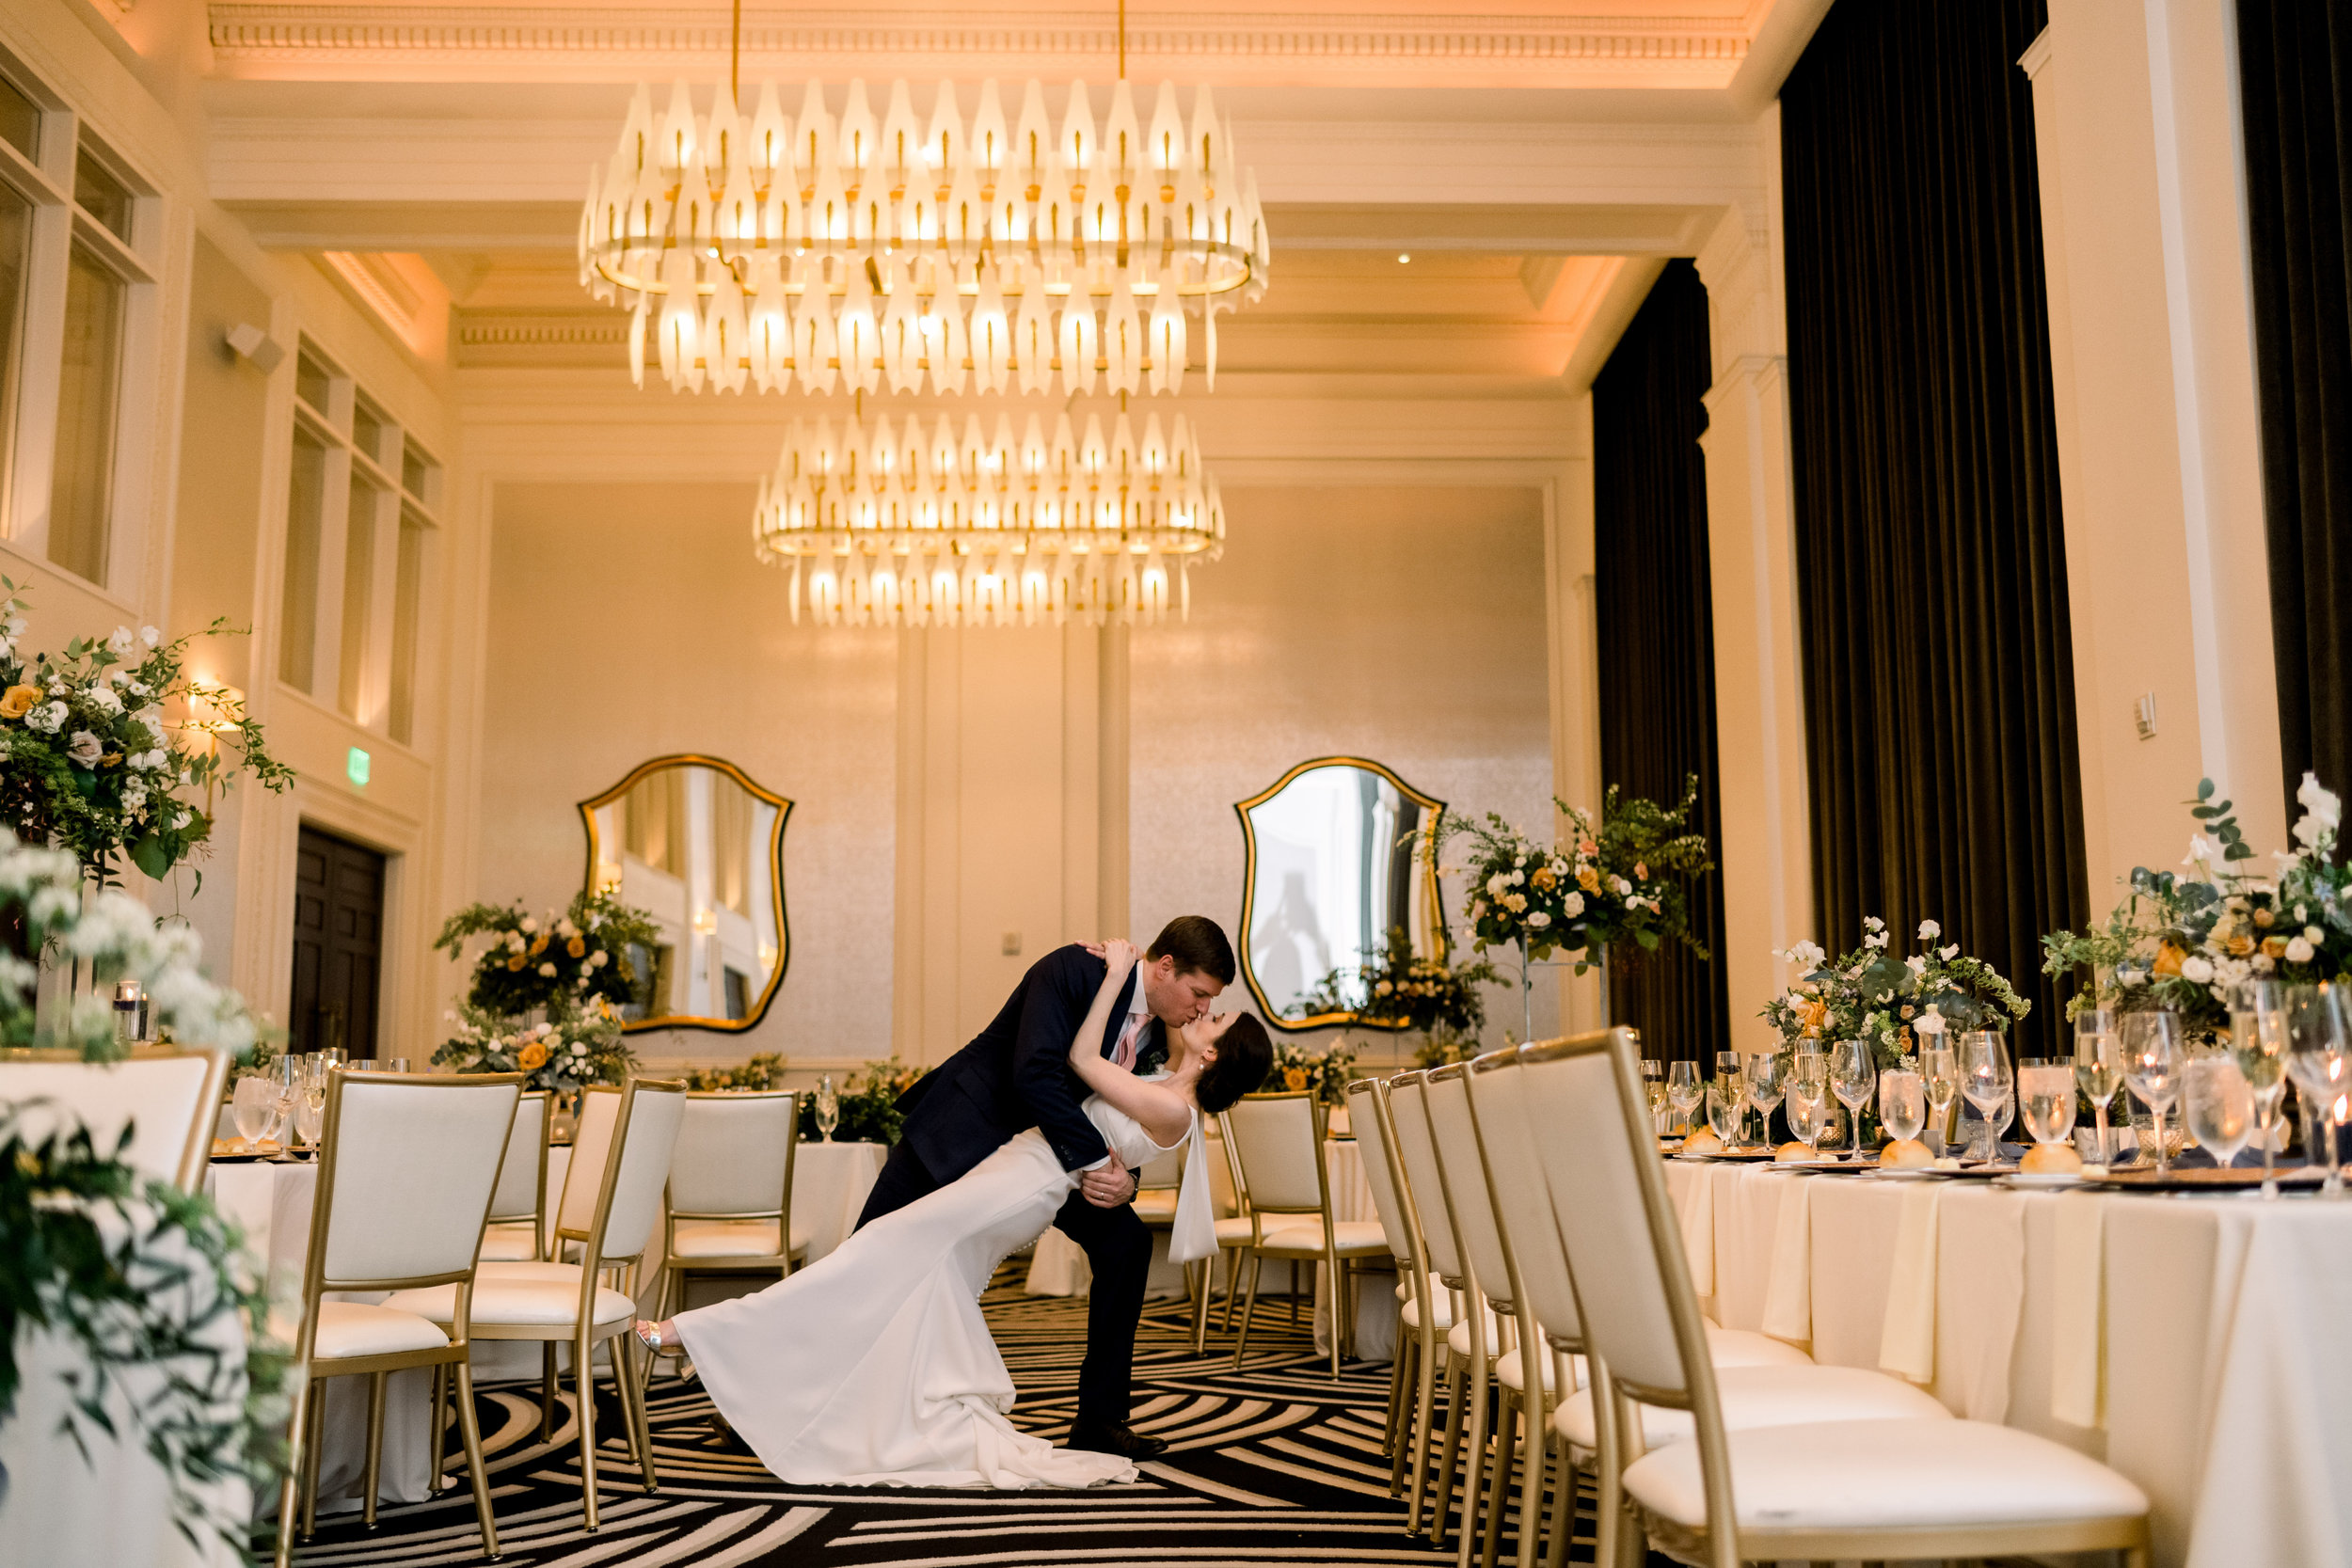 Bride and groom dancing for Pittsburgh wedding at Hotel Monaco planned by Exhale Events. Find more modern wedding ideas at exhale-events.com!